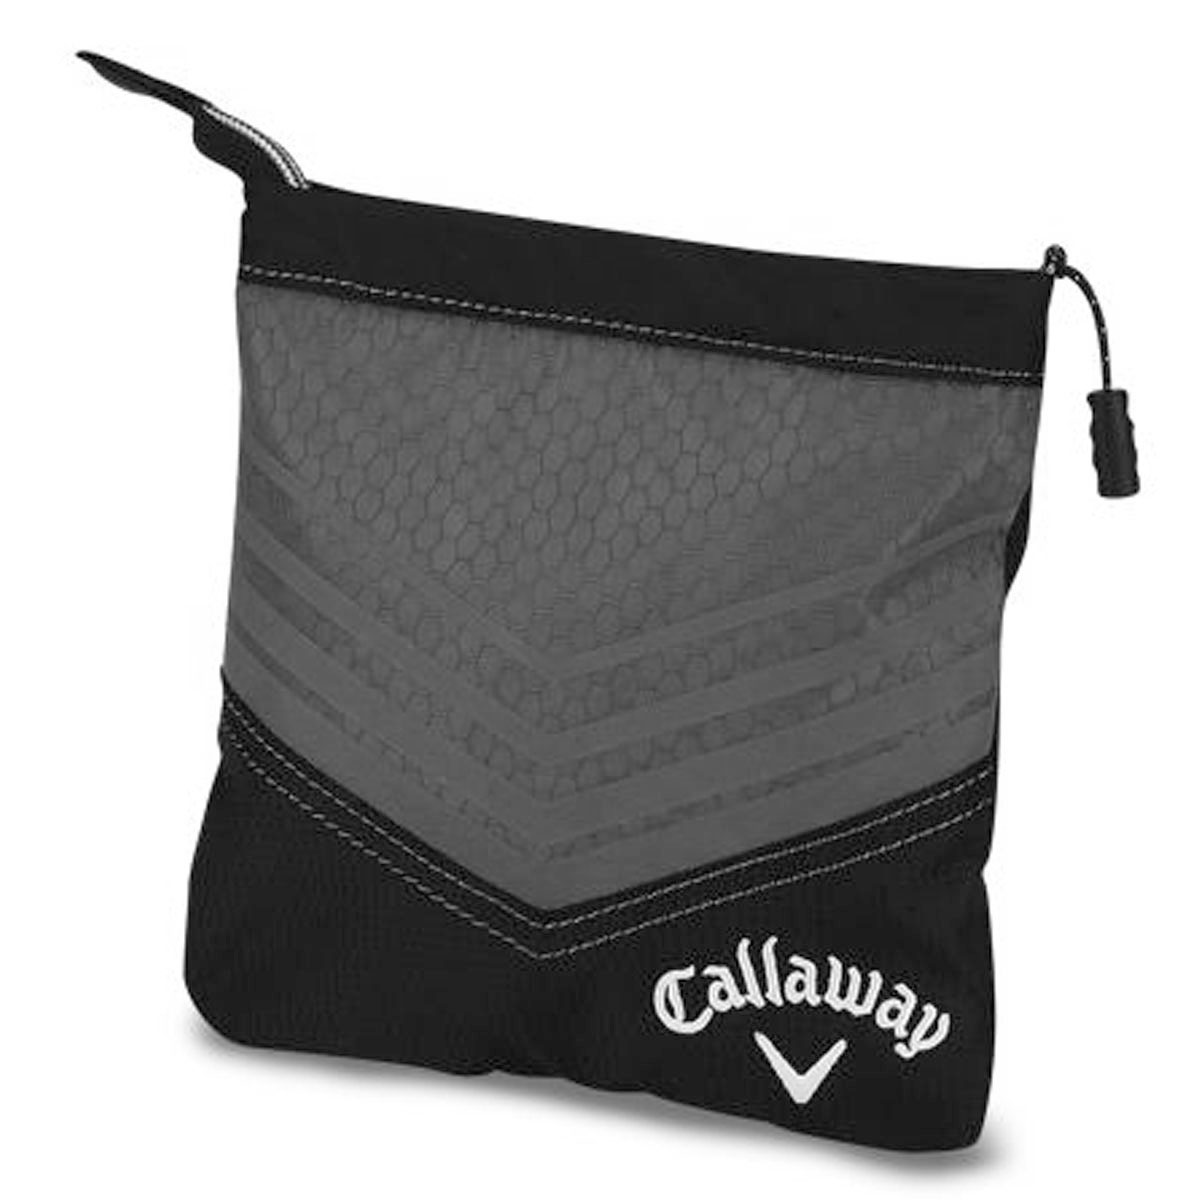 Callaway Golf Sport Valuables Pouch Accessories Bag Gray